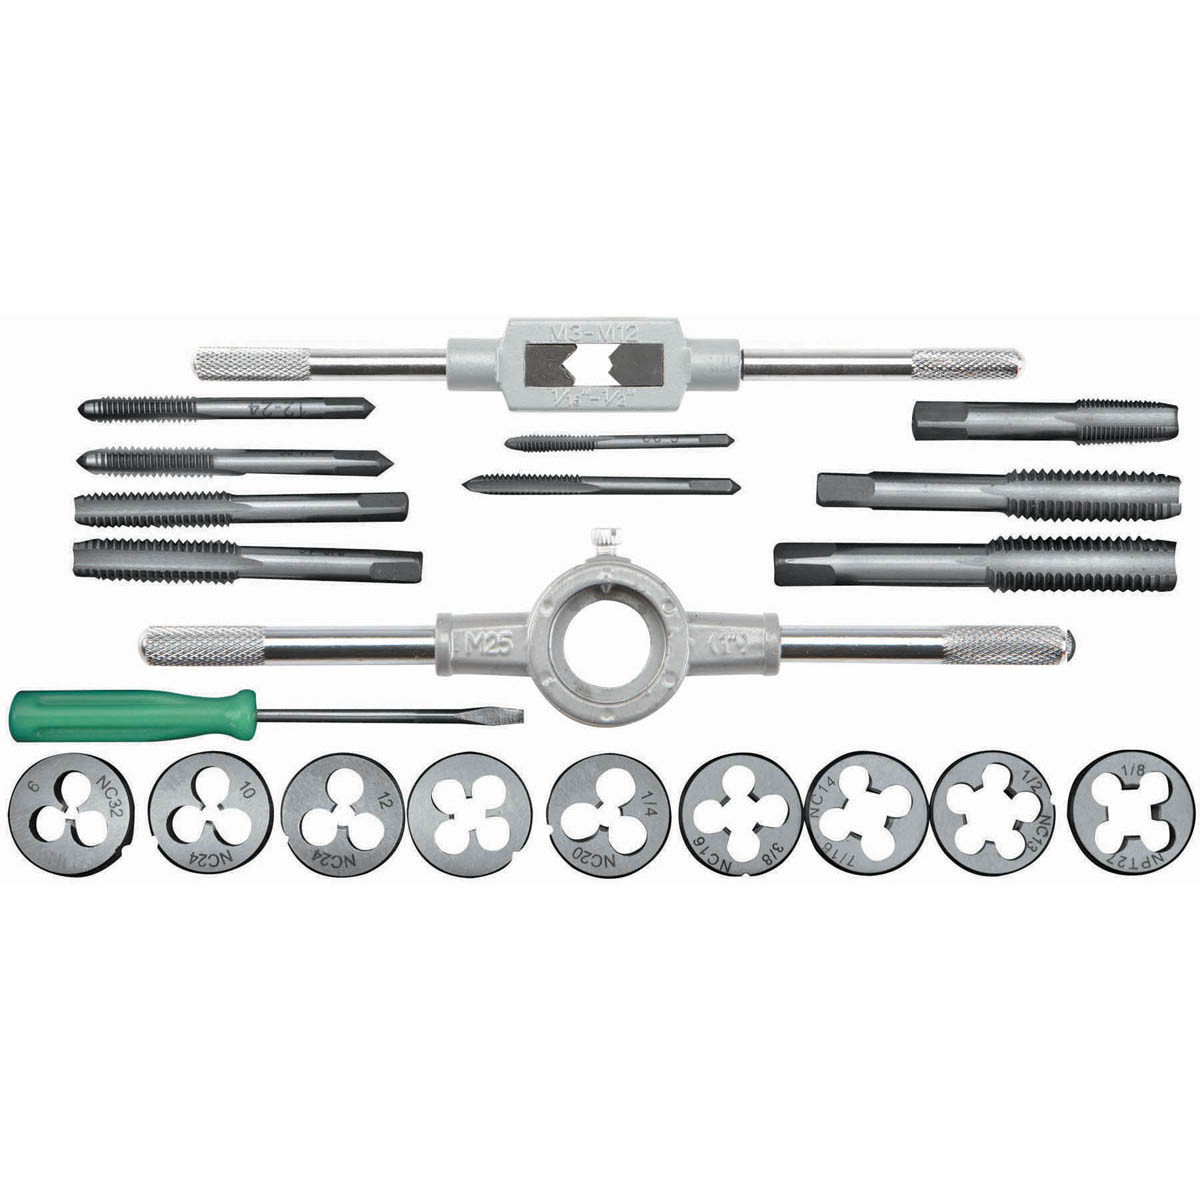 21 Pc Carbon Steel Sae Tap And Set